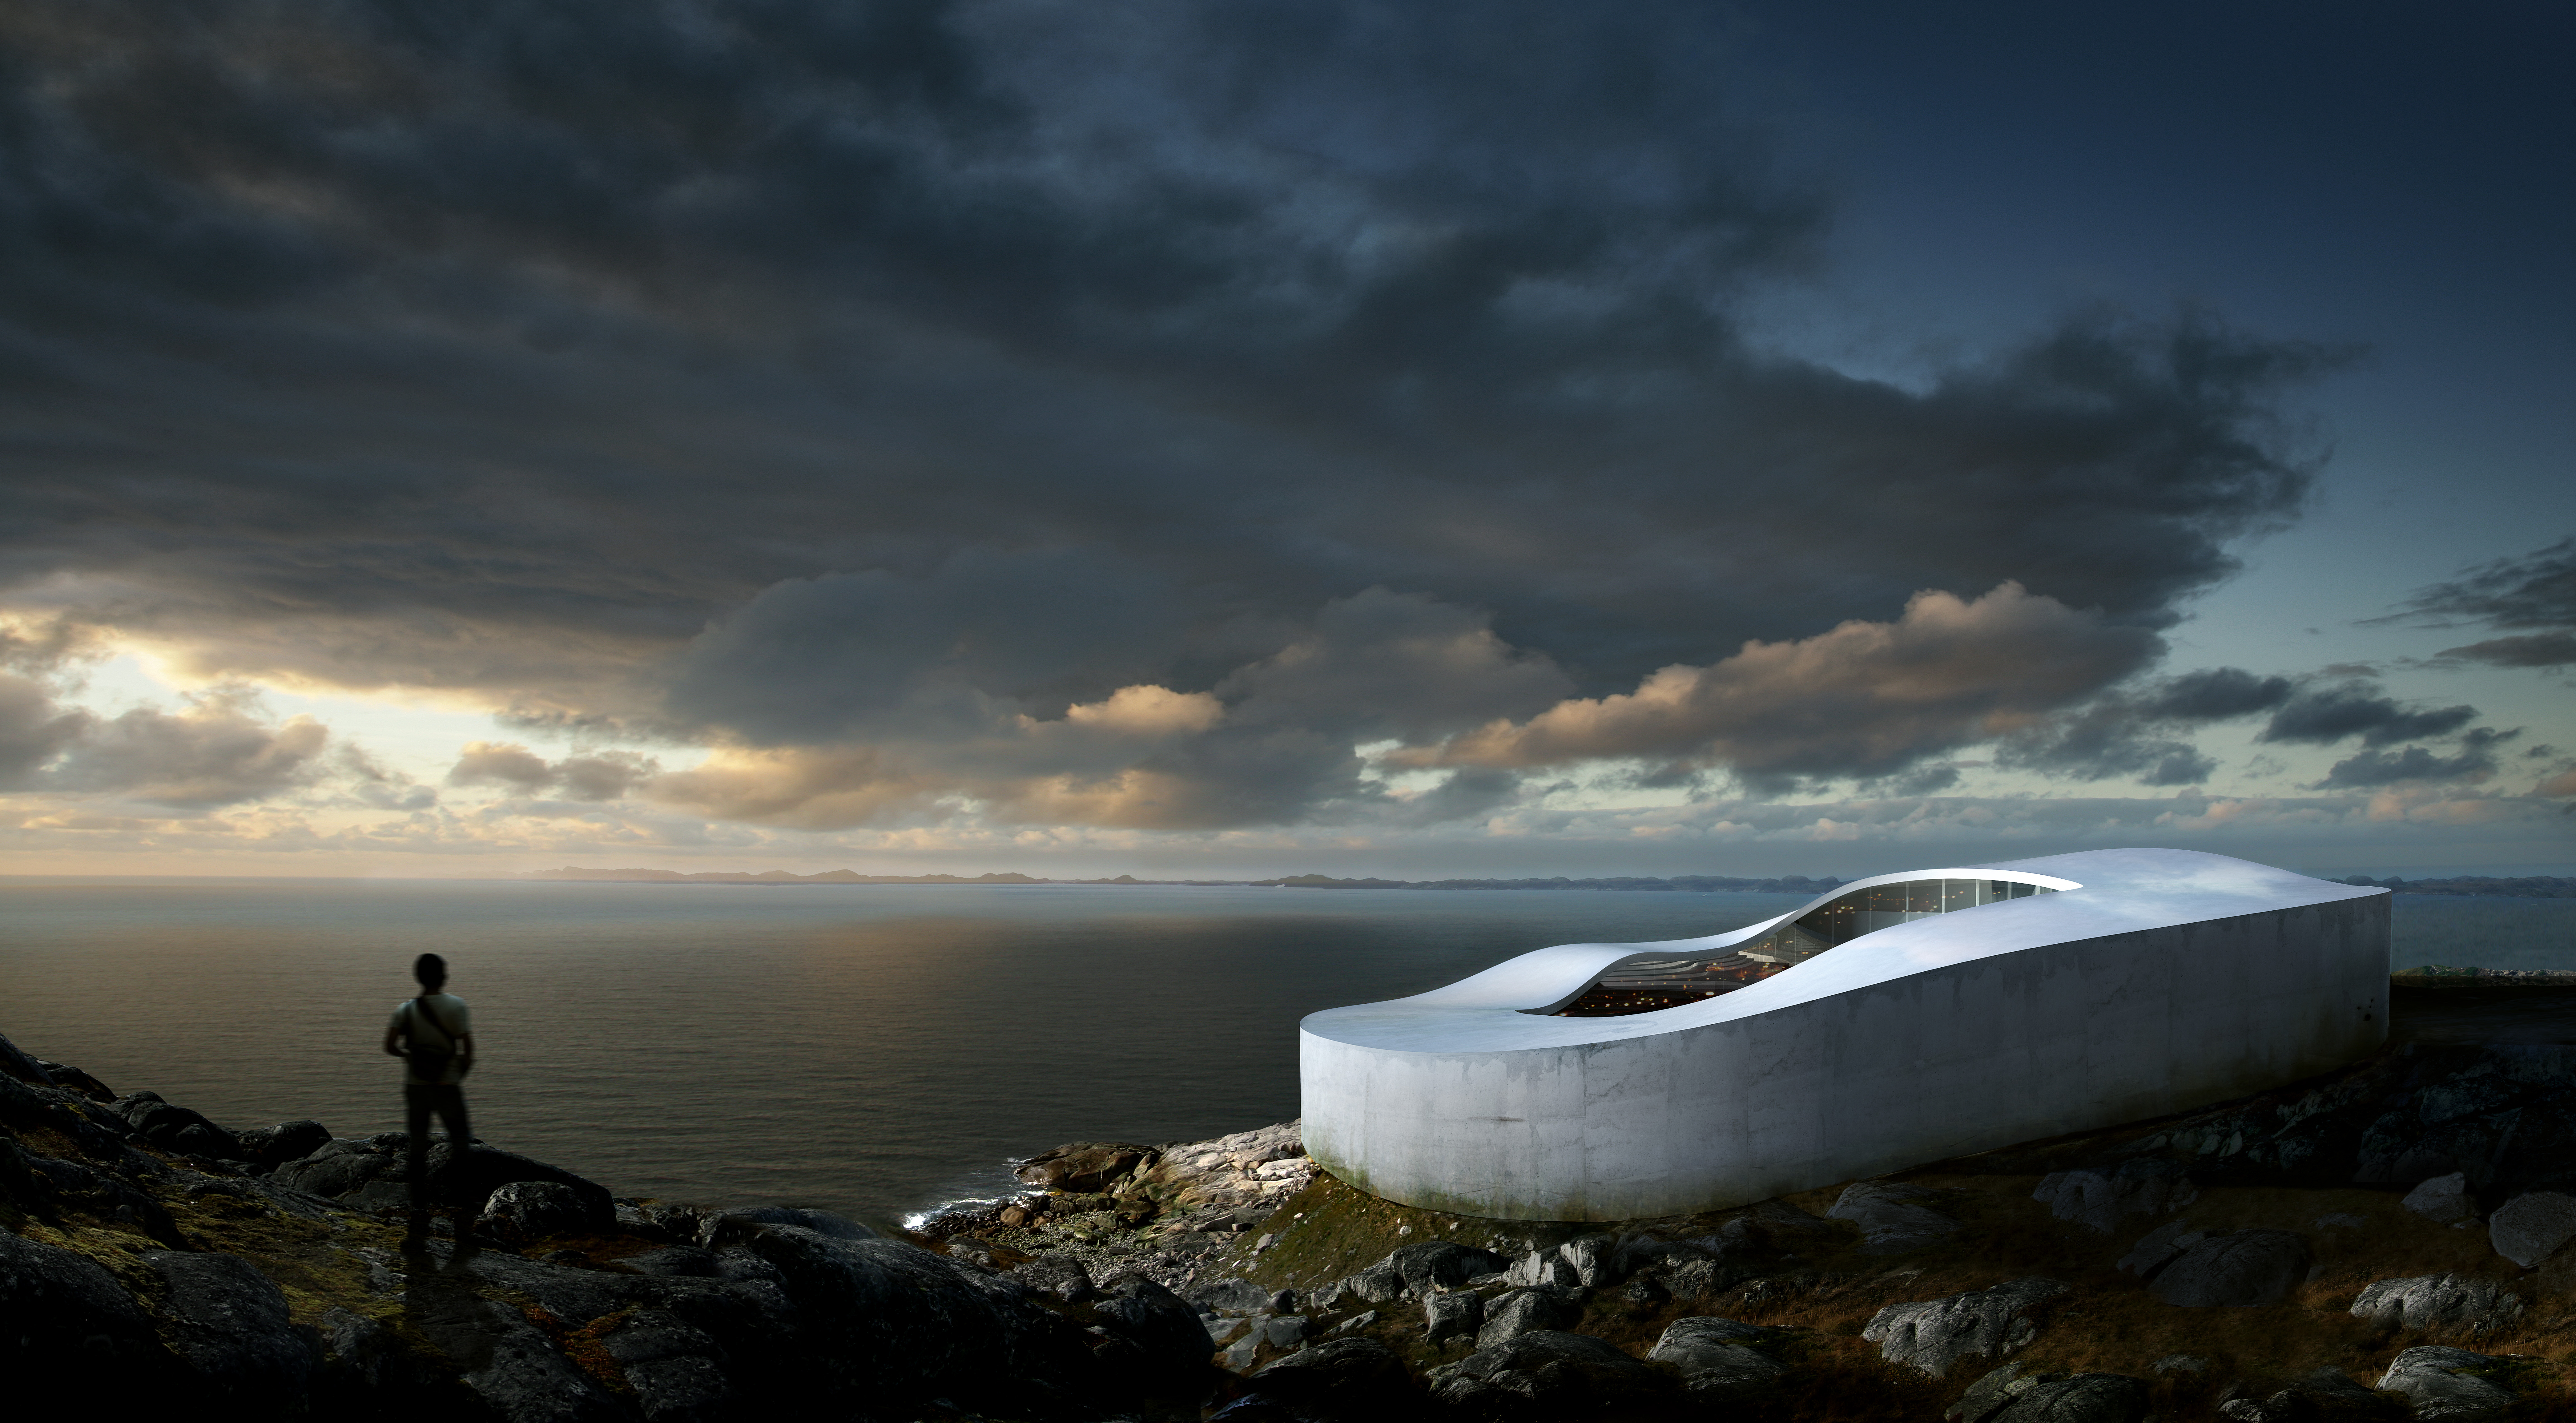 Exciting News Danish Architect Bjarke Ingels Group Big Design Firms Hot Cold Projects View Usa besides Countdown Biggest Family Festival Europe in addition Narrative Coaching additionally Scandinavian in addition Bag For Life. on scandinavian design books